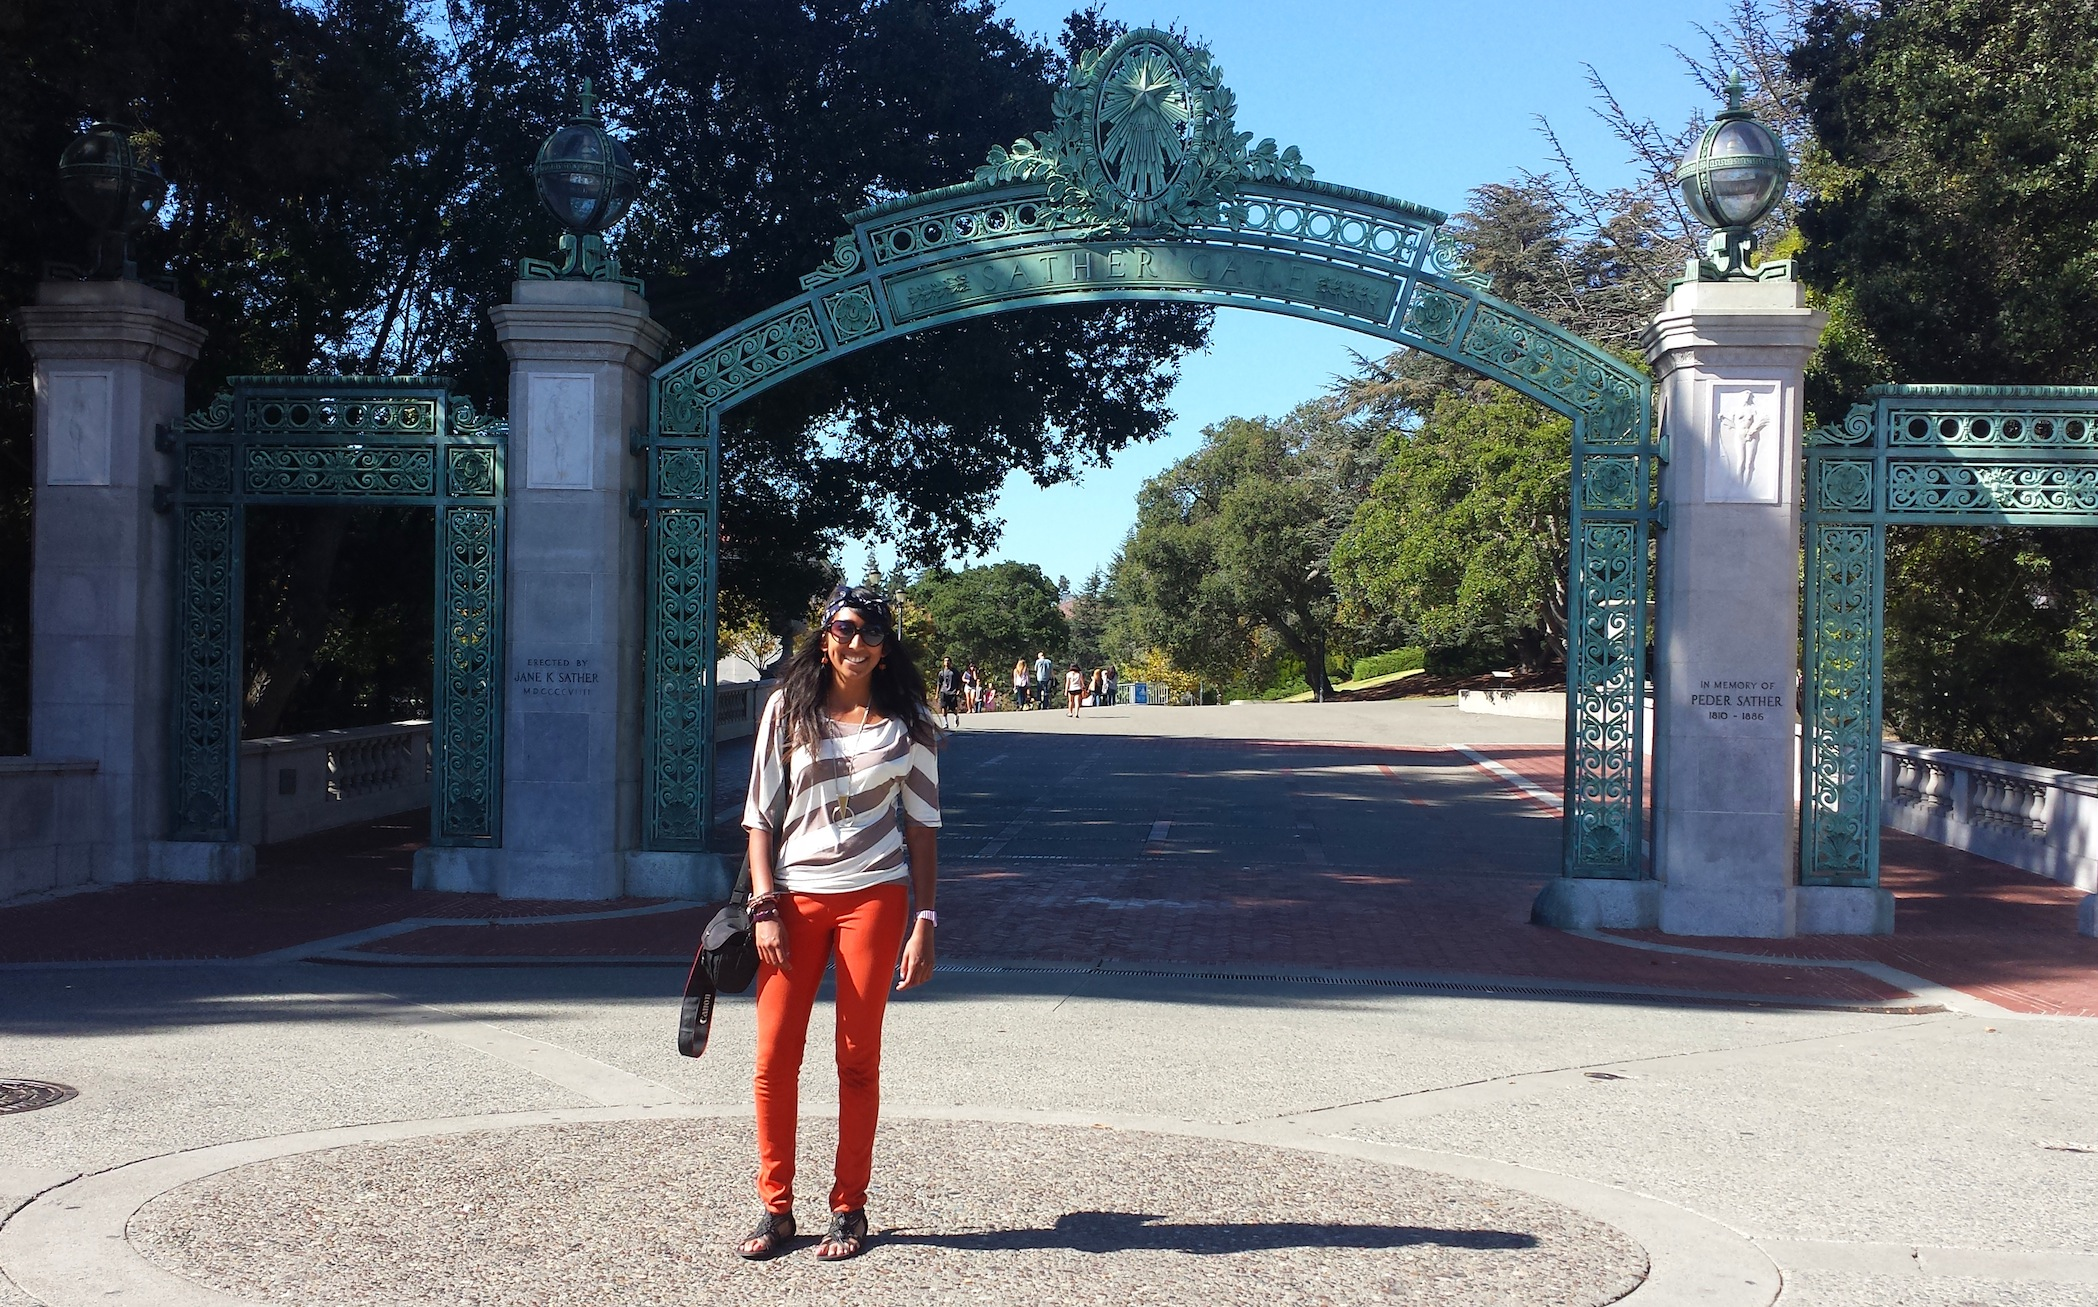 UC Berkeley Sather Gate